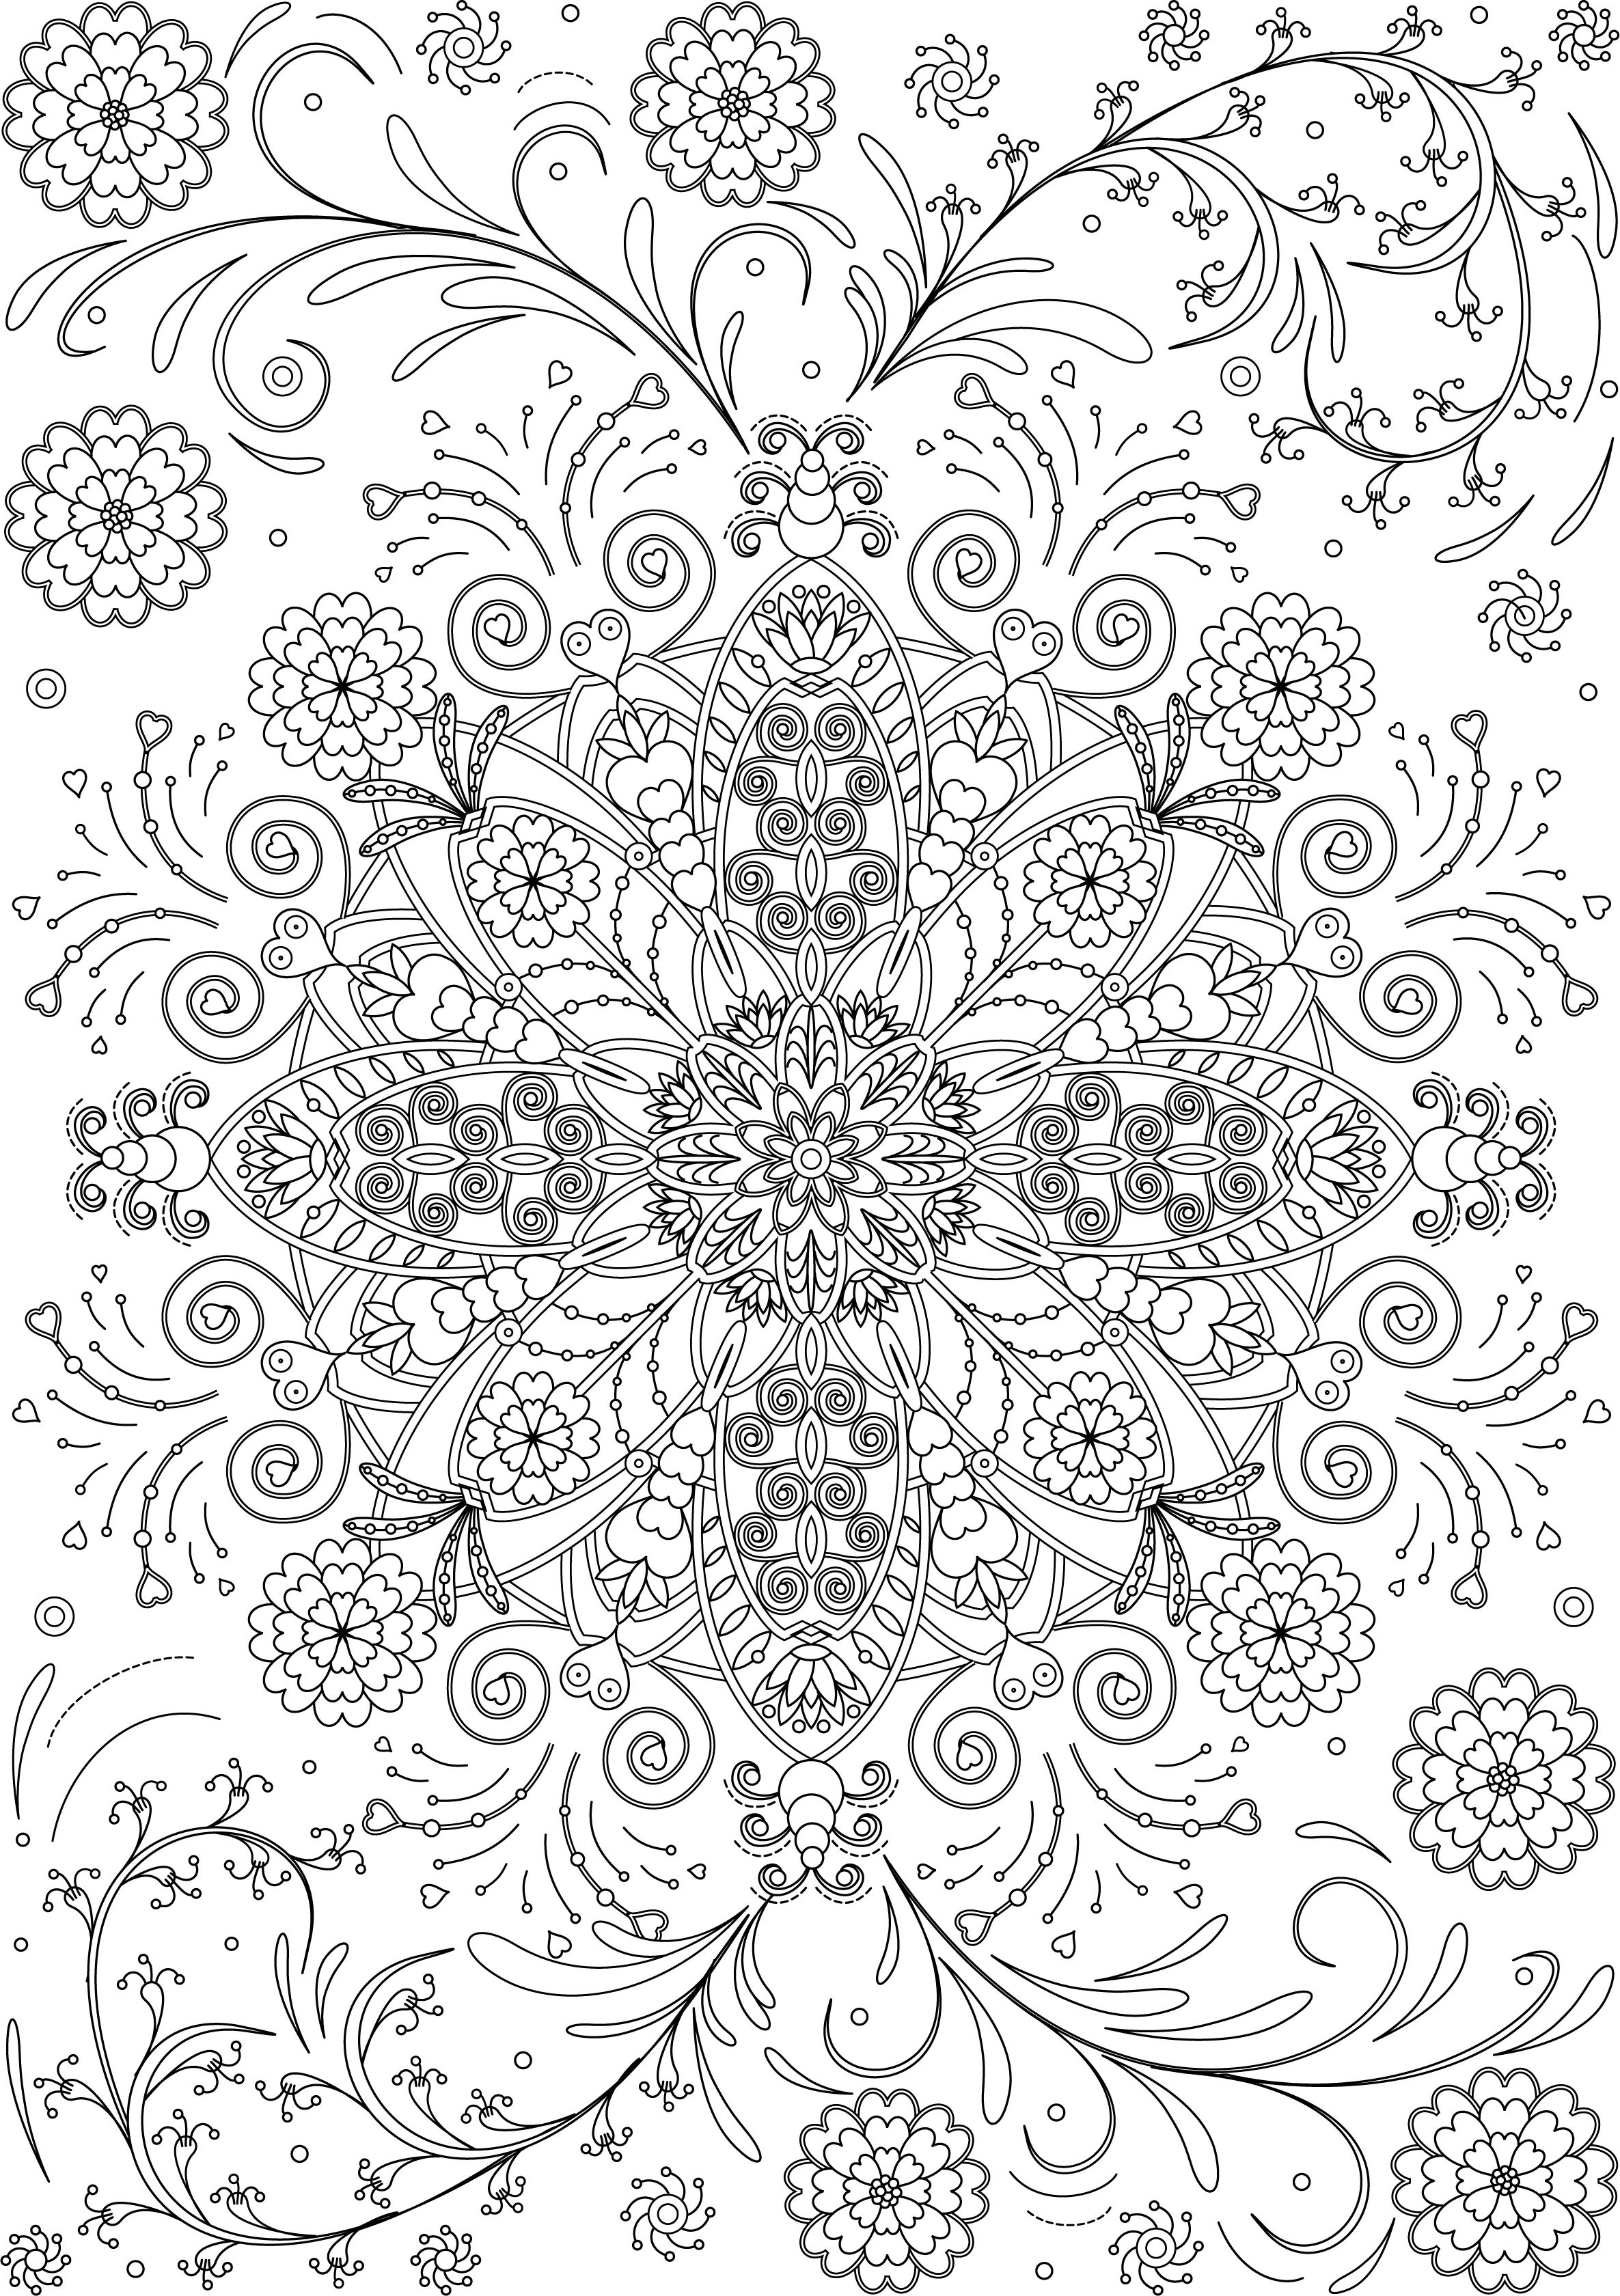 Decorative Round Ornament Flower Mandala Vector Illustration For Coloring Pages Anti Stress Th Mandala Coloring Books Mandala Coloring Flower Coloring Pages